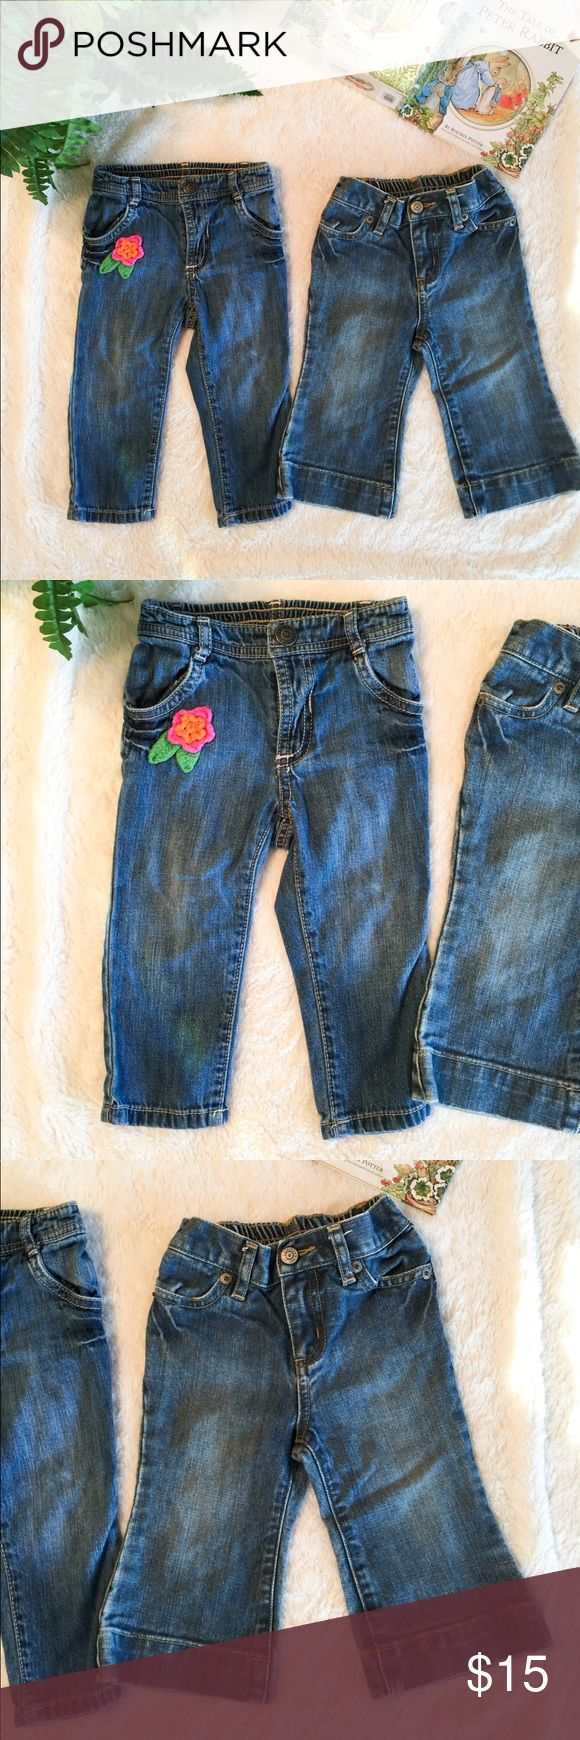 Bundle Old Navy | Baby Gap Jeans 6-12M Bundle One pair of Old Navy jeans with a crochet flower and one pair of Baby Gap jeans with flare. Both so cute! Old navy jeans can be rolled if necessary. Prices are already low- bundle for extra savings! 🌷👍🏼 Baby Gap Bottoms Jeans